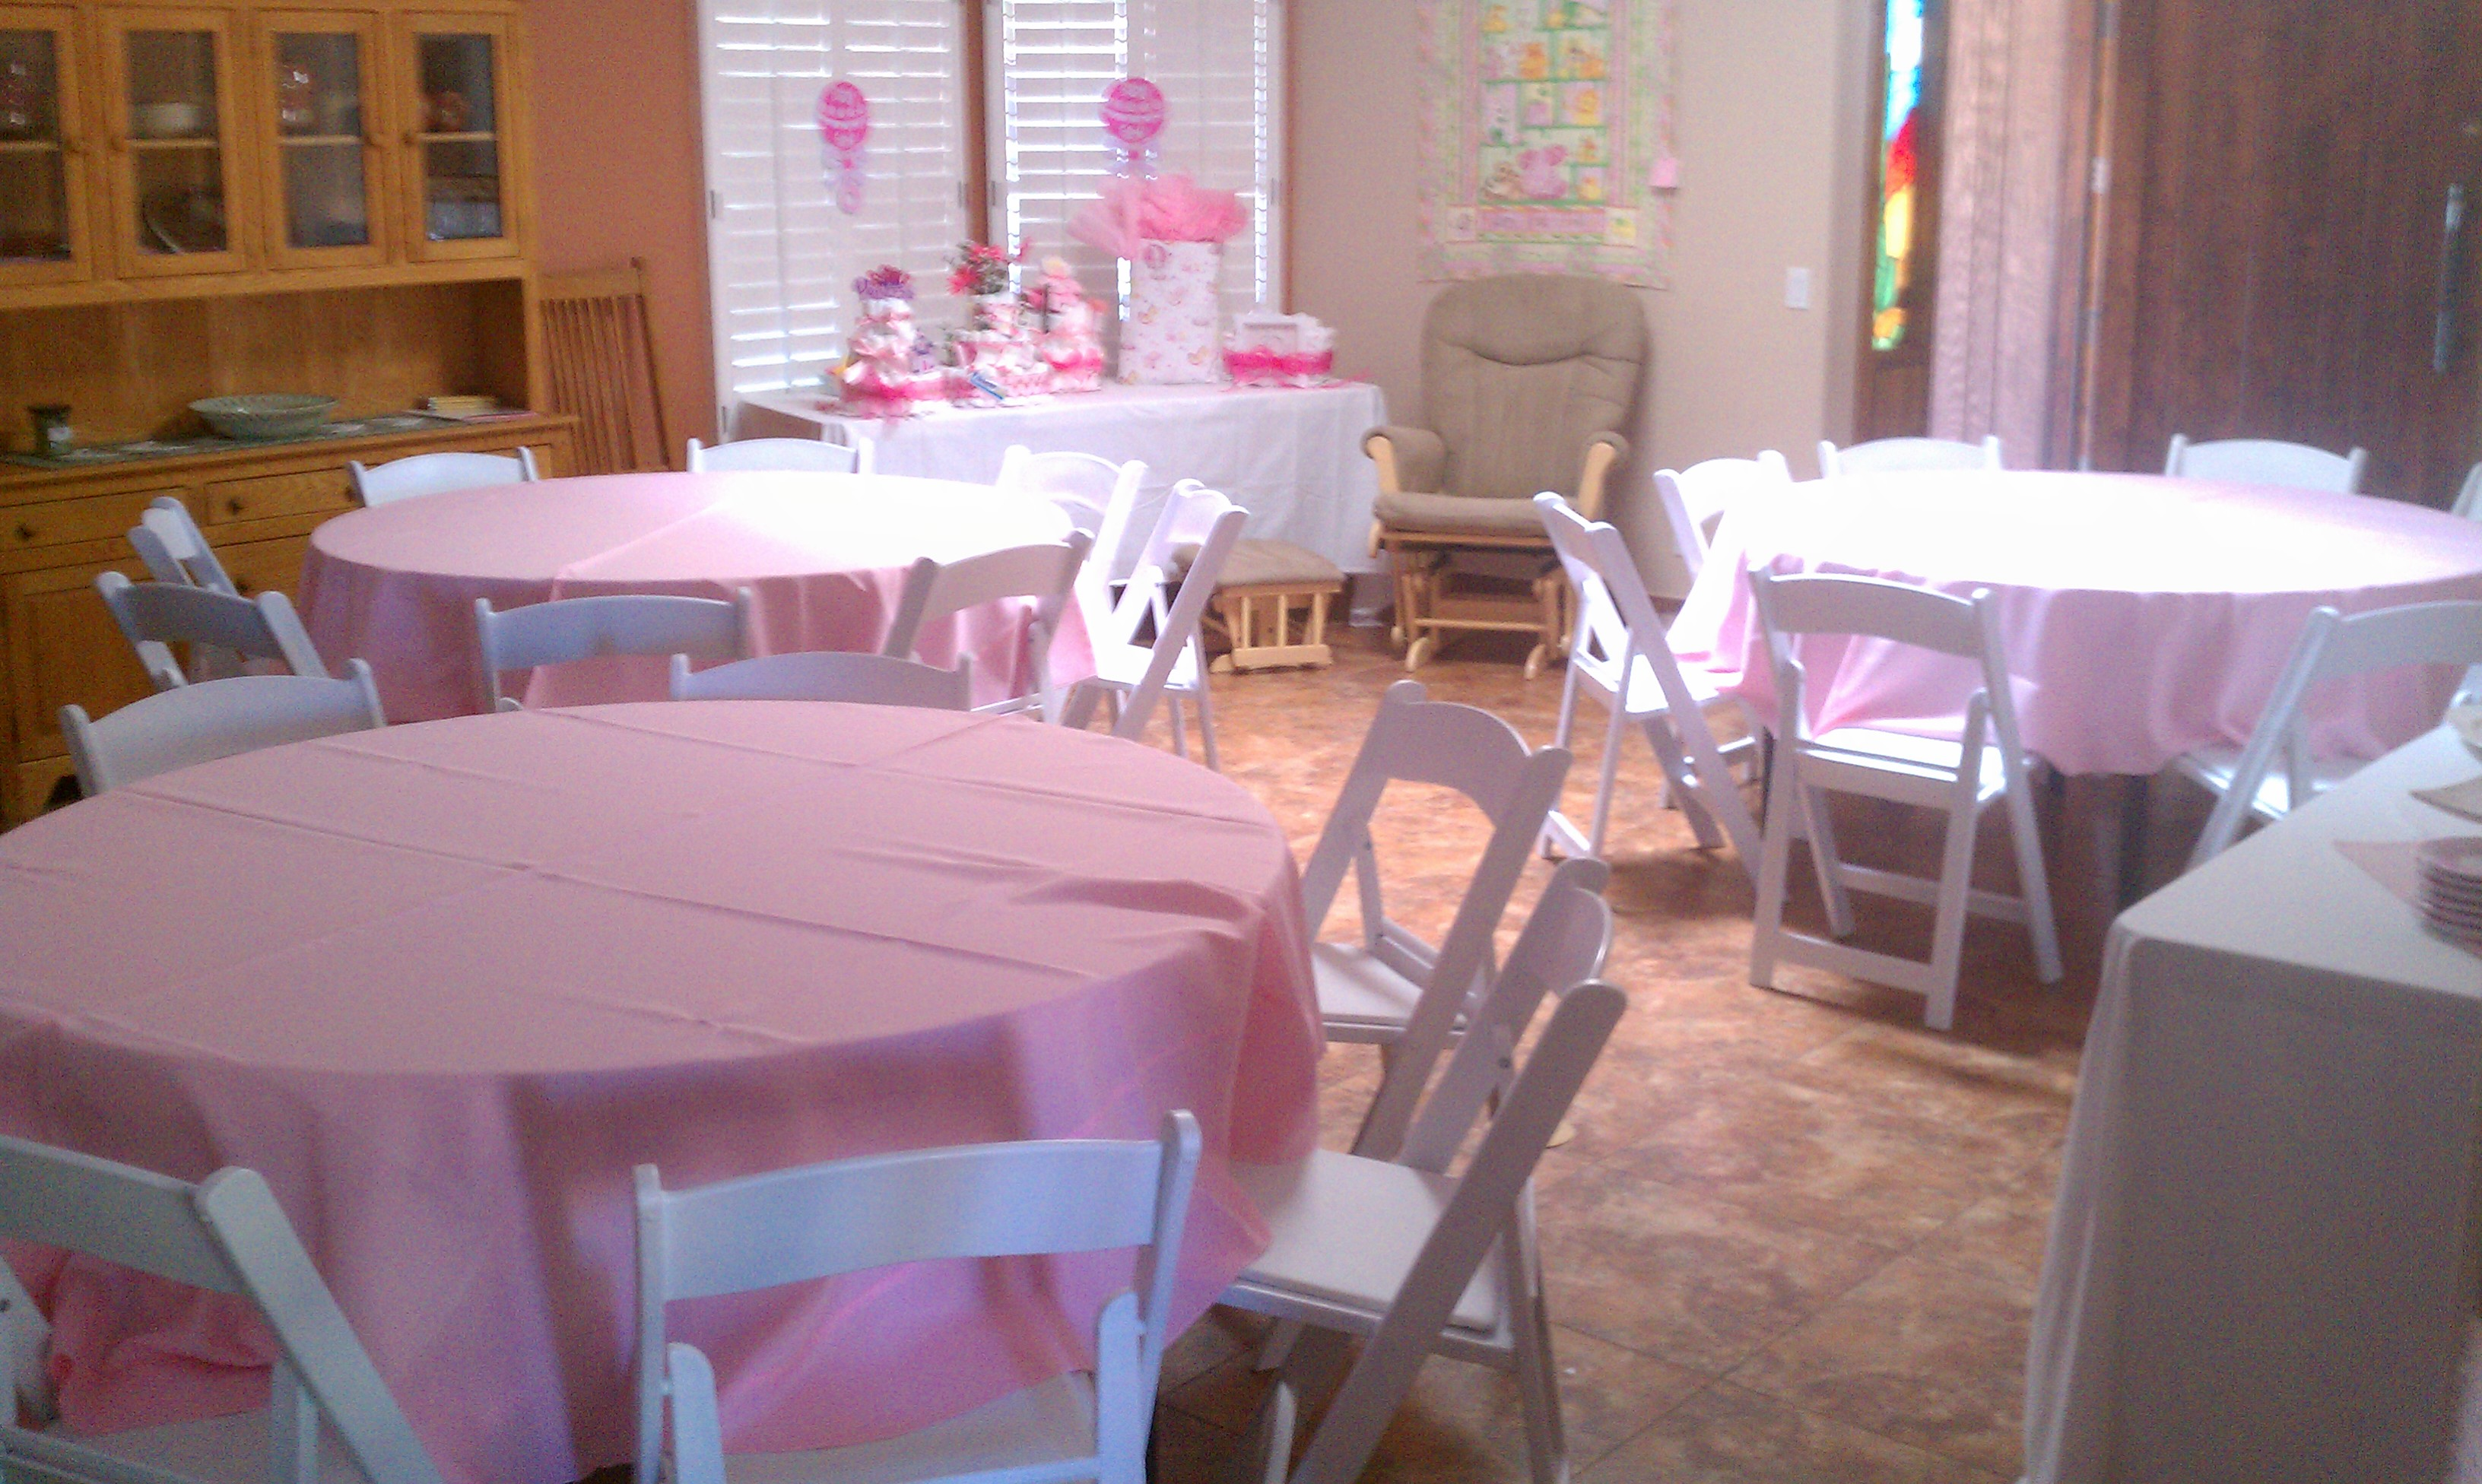 nyc rent tents chair marvelous ideas bronx rental party baby tables nobby for halls showers chairs rentals design shower